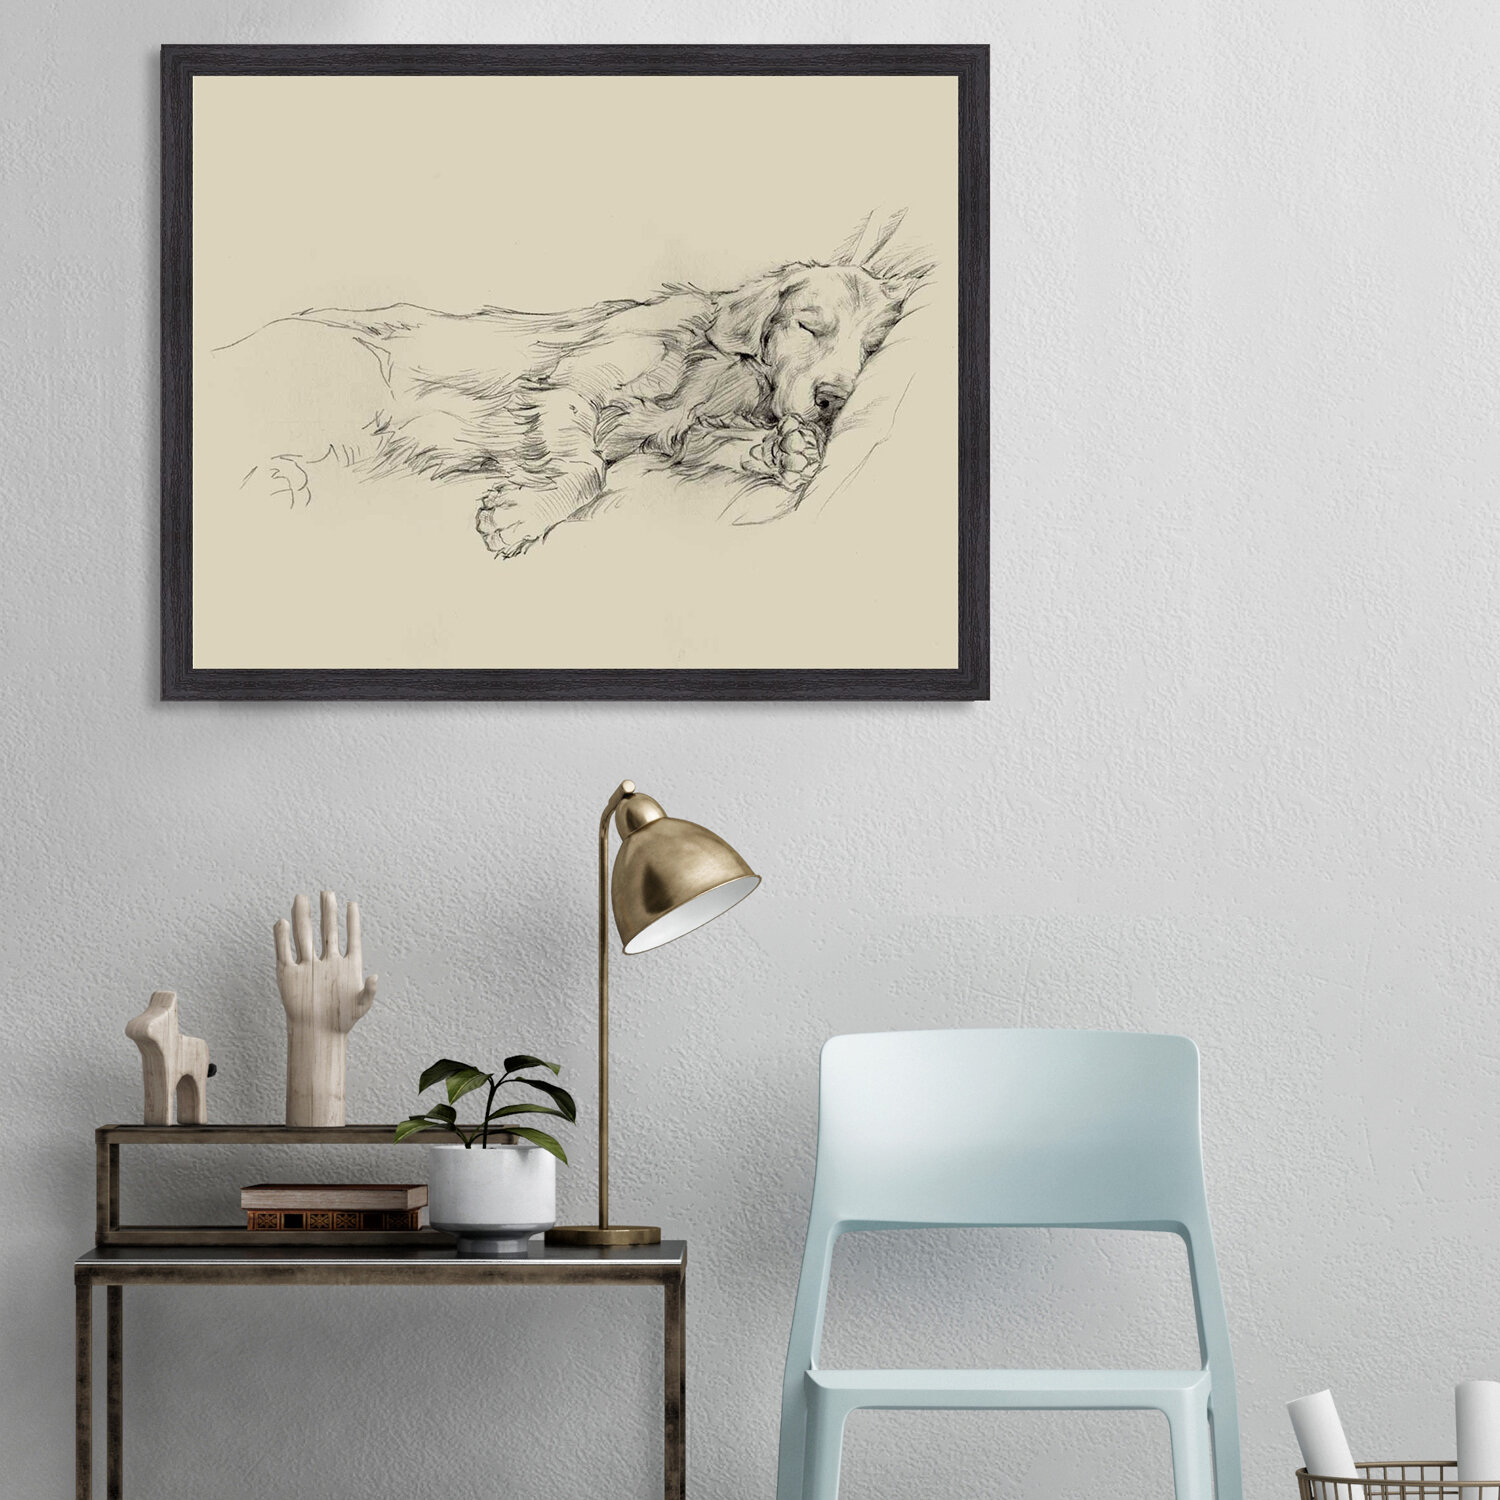 Farmhouse & Rustic Alcott Hill Wall Art | Birch Lane With Regard To Vase And Bowl Wall Decor By Alcott Hill (View 17 of 30)